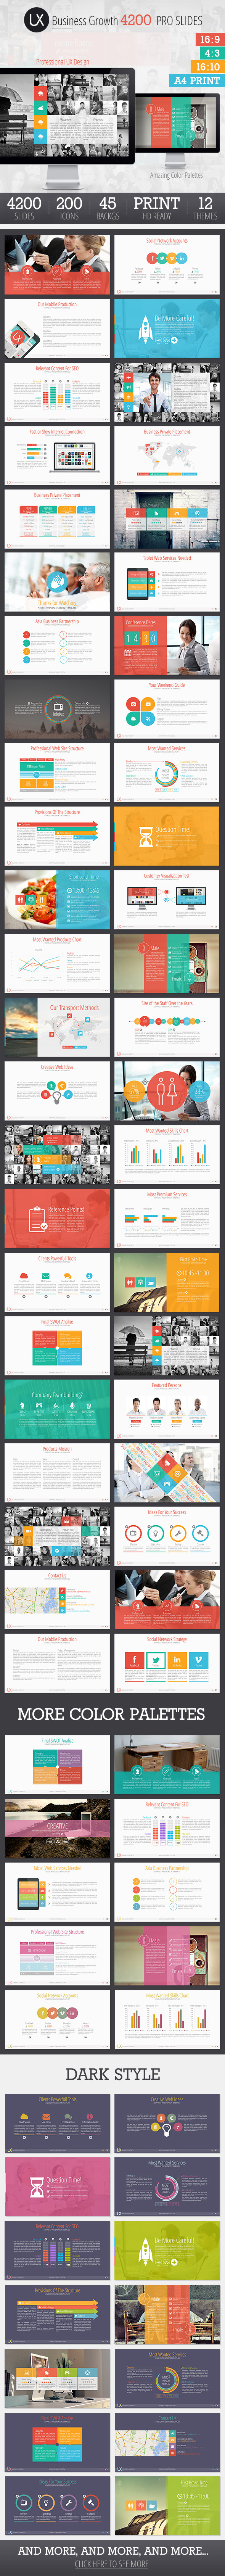 UX Design Presentation Template